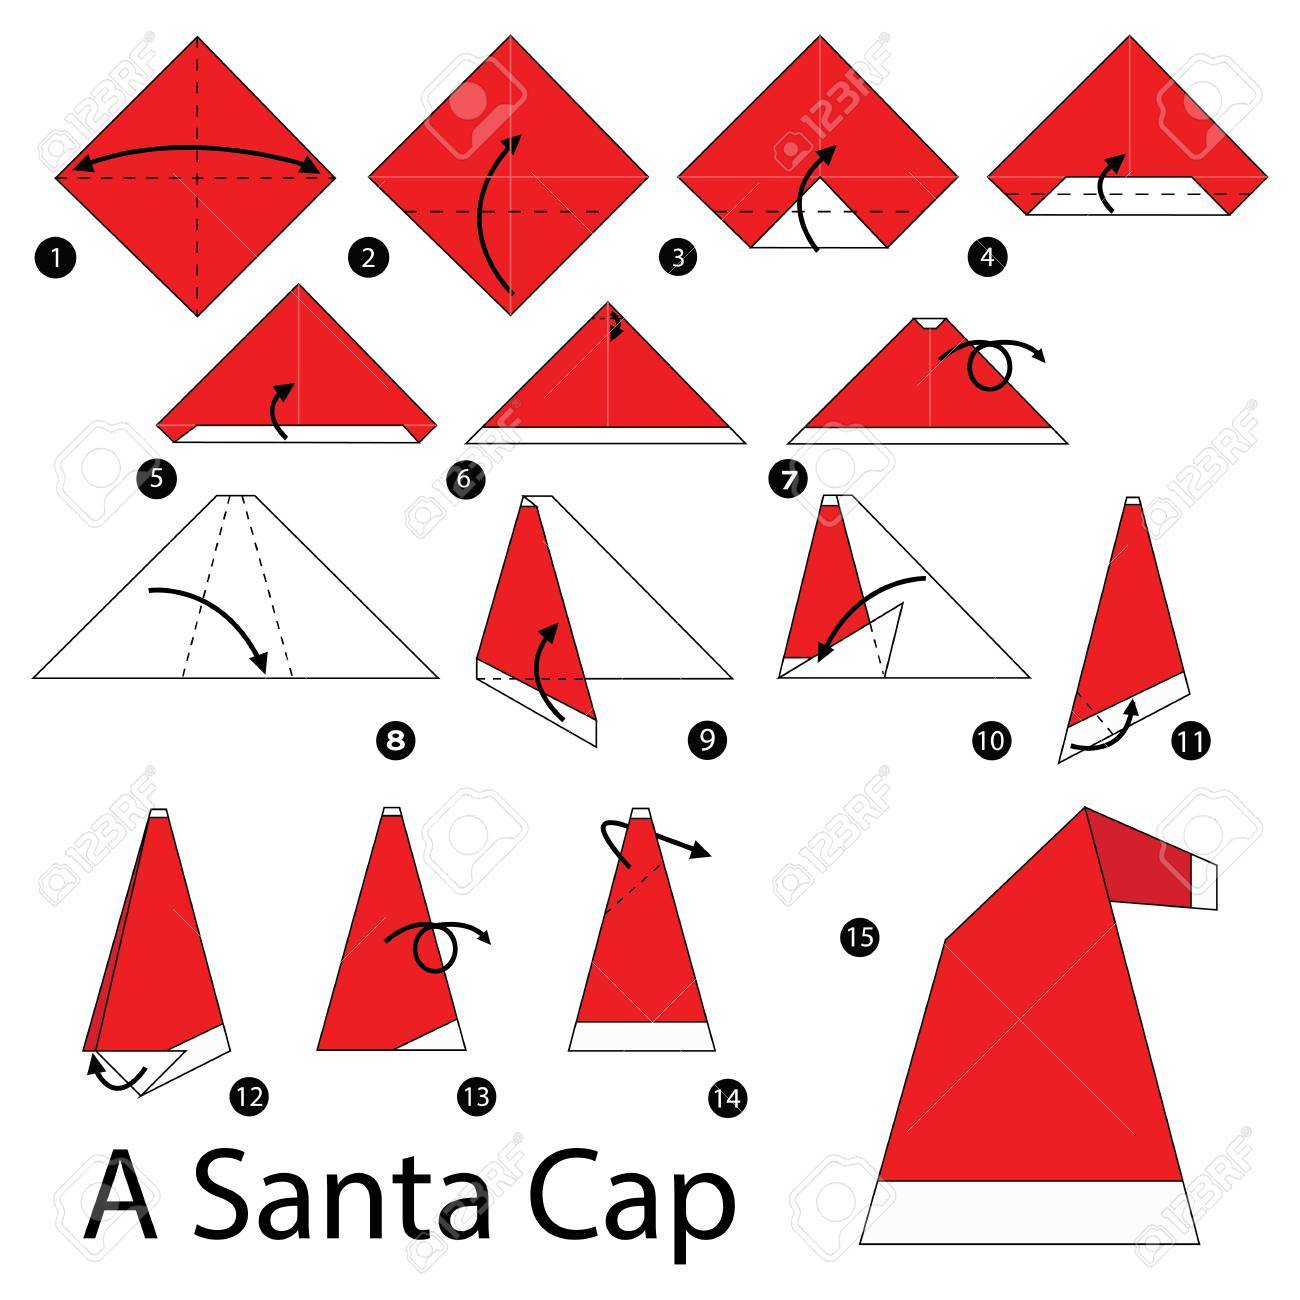 Easy Origami Santa Claus Instructions for Kids - Kids Can Make | 1300x1300